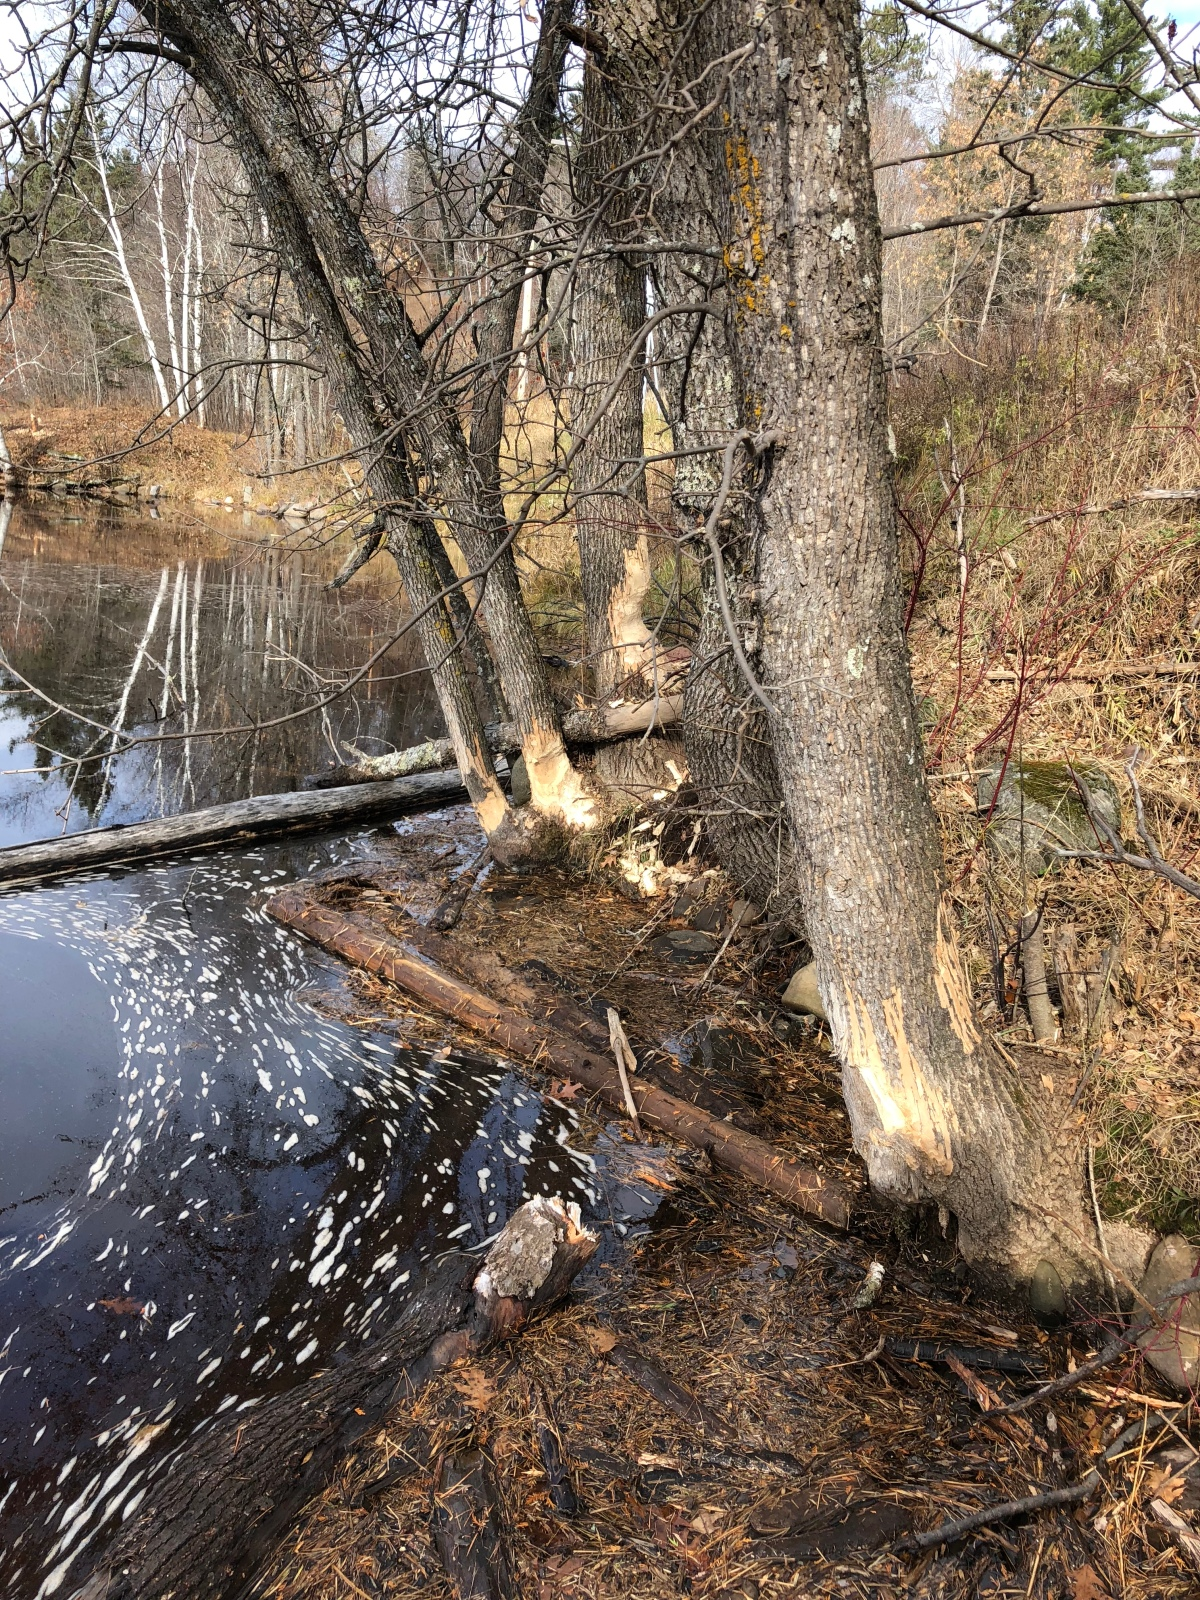 Beavers had been busy along the river trail